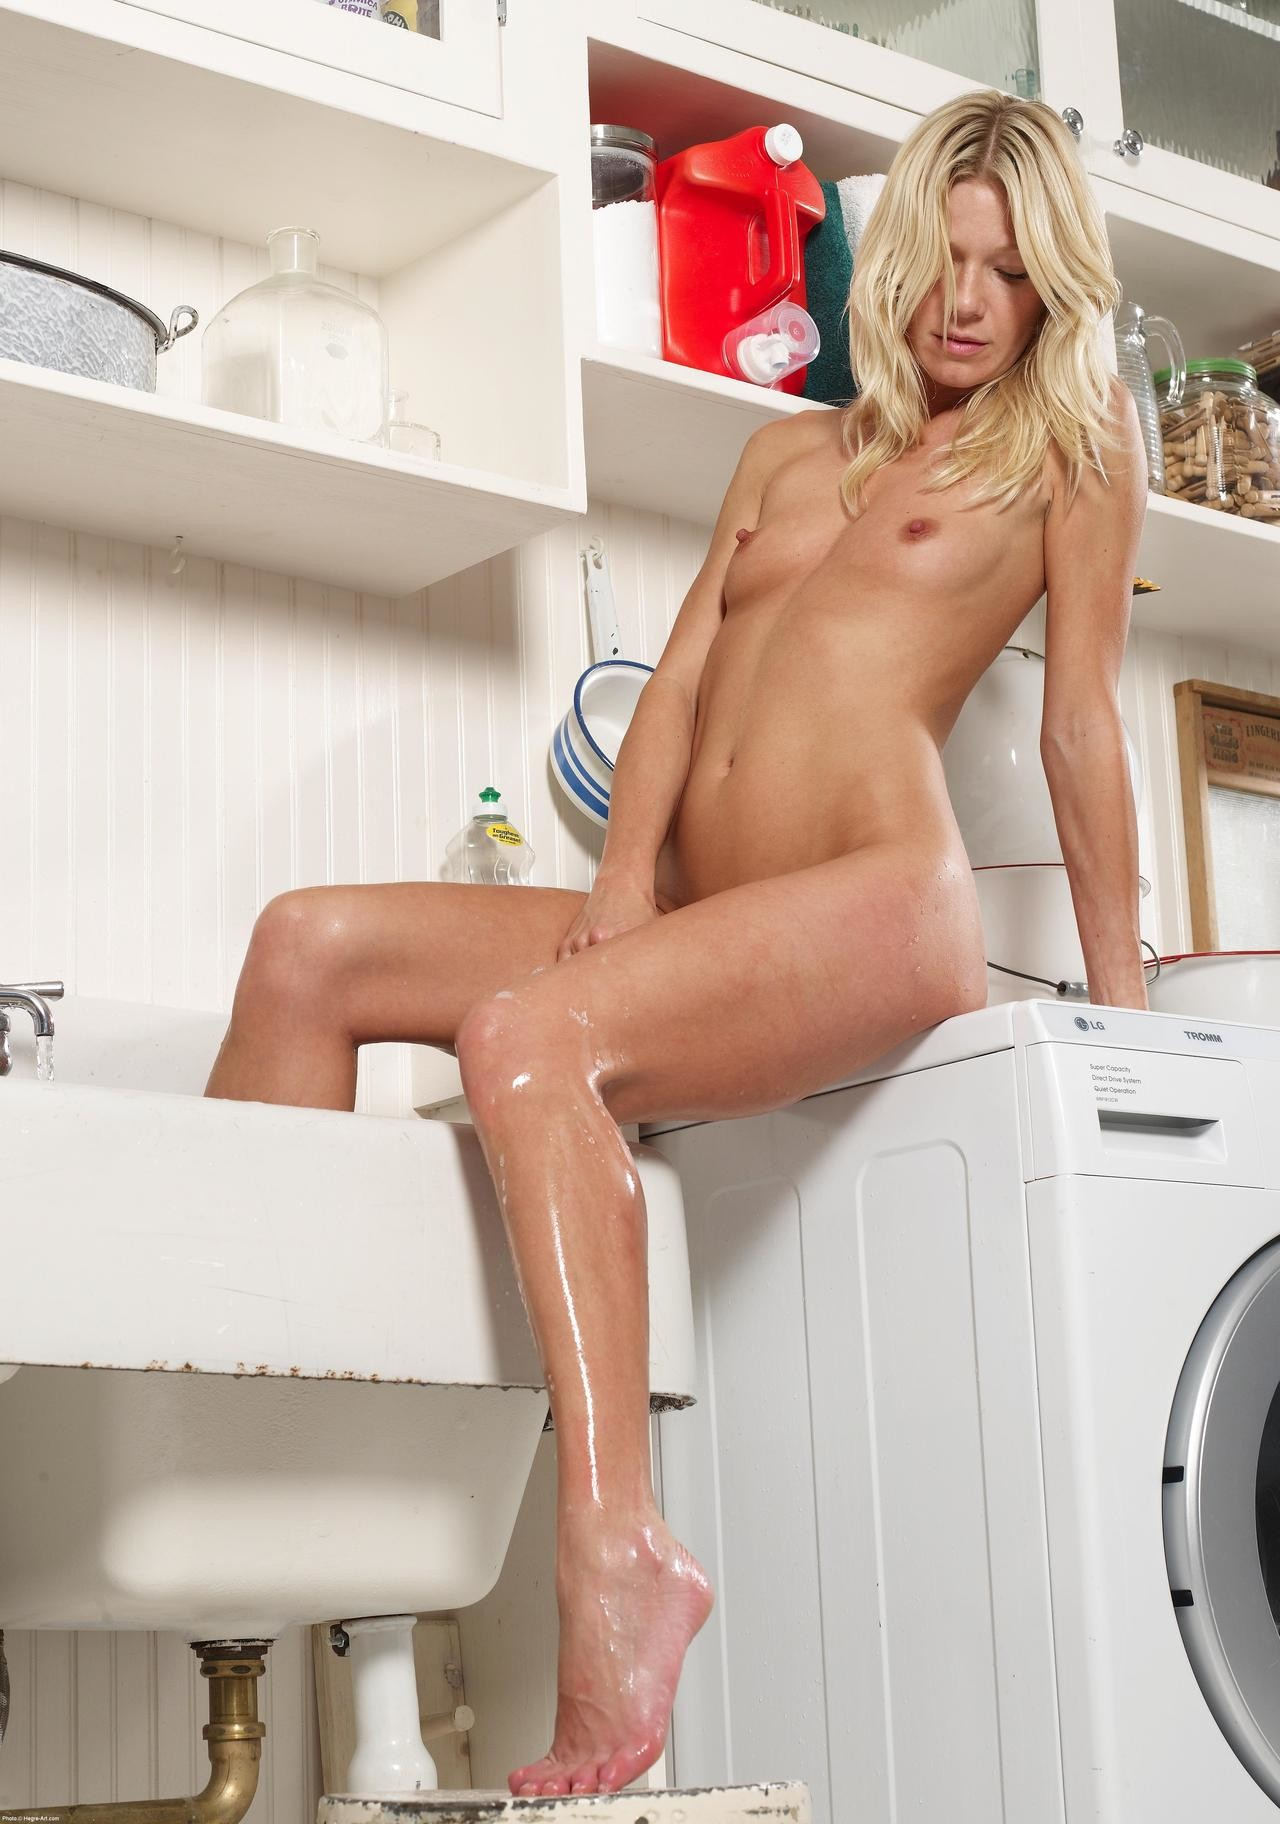 laundry-girls-nude-washing-machine-photo-mix-79